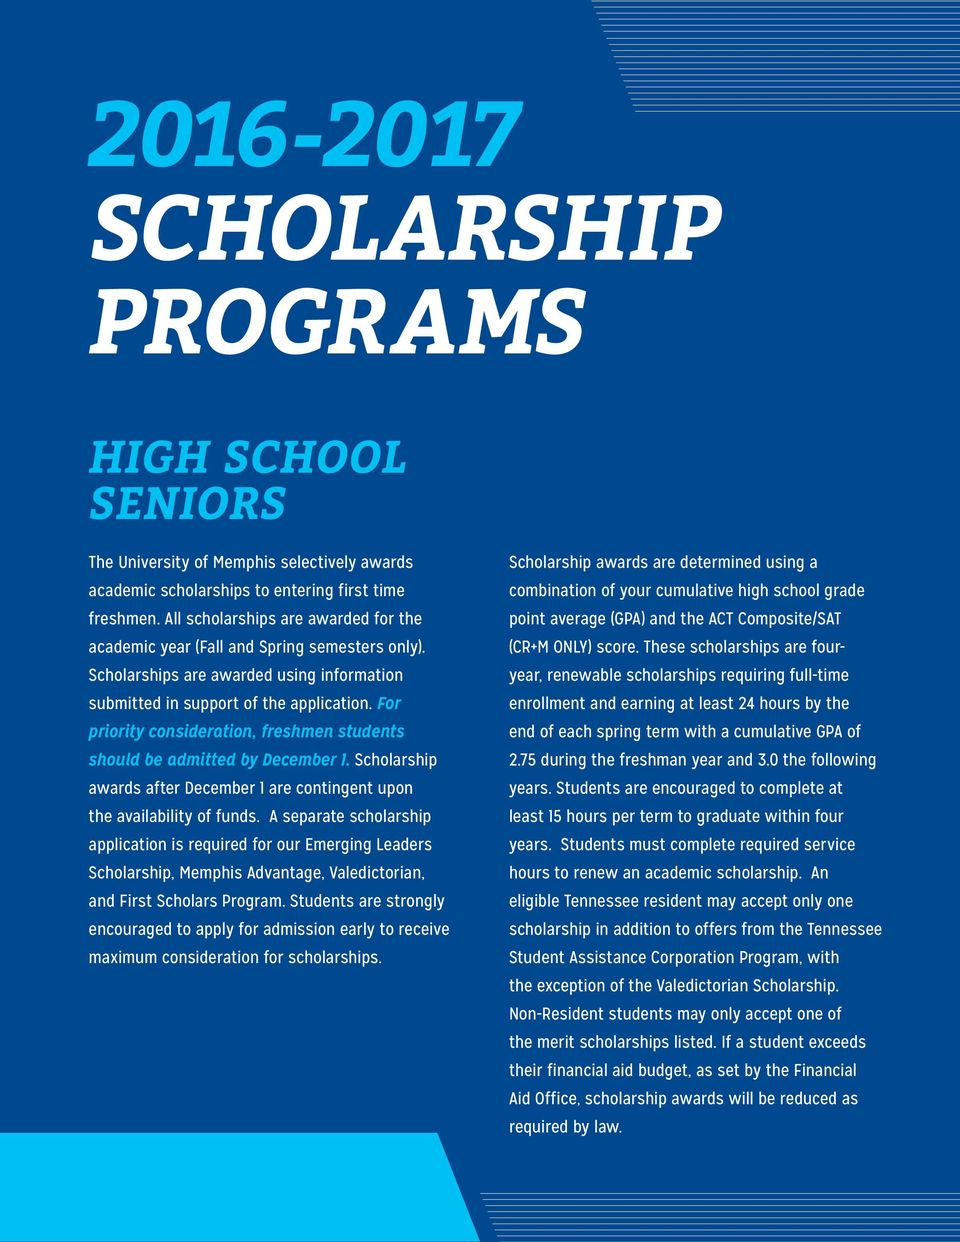 For priority consideration, freshmen students should be admitted by December 1. Scholarship awards after December 1 are contingent upon the availability of funds.